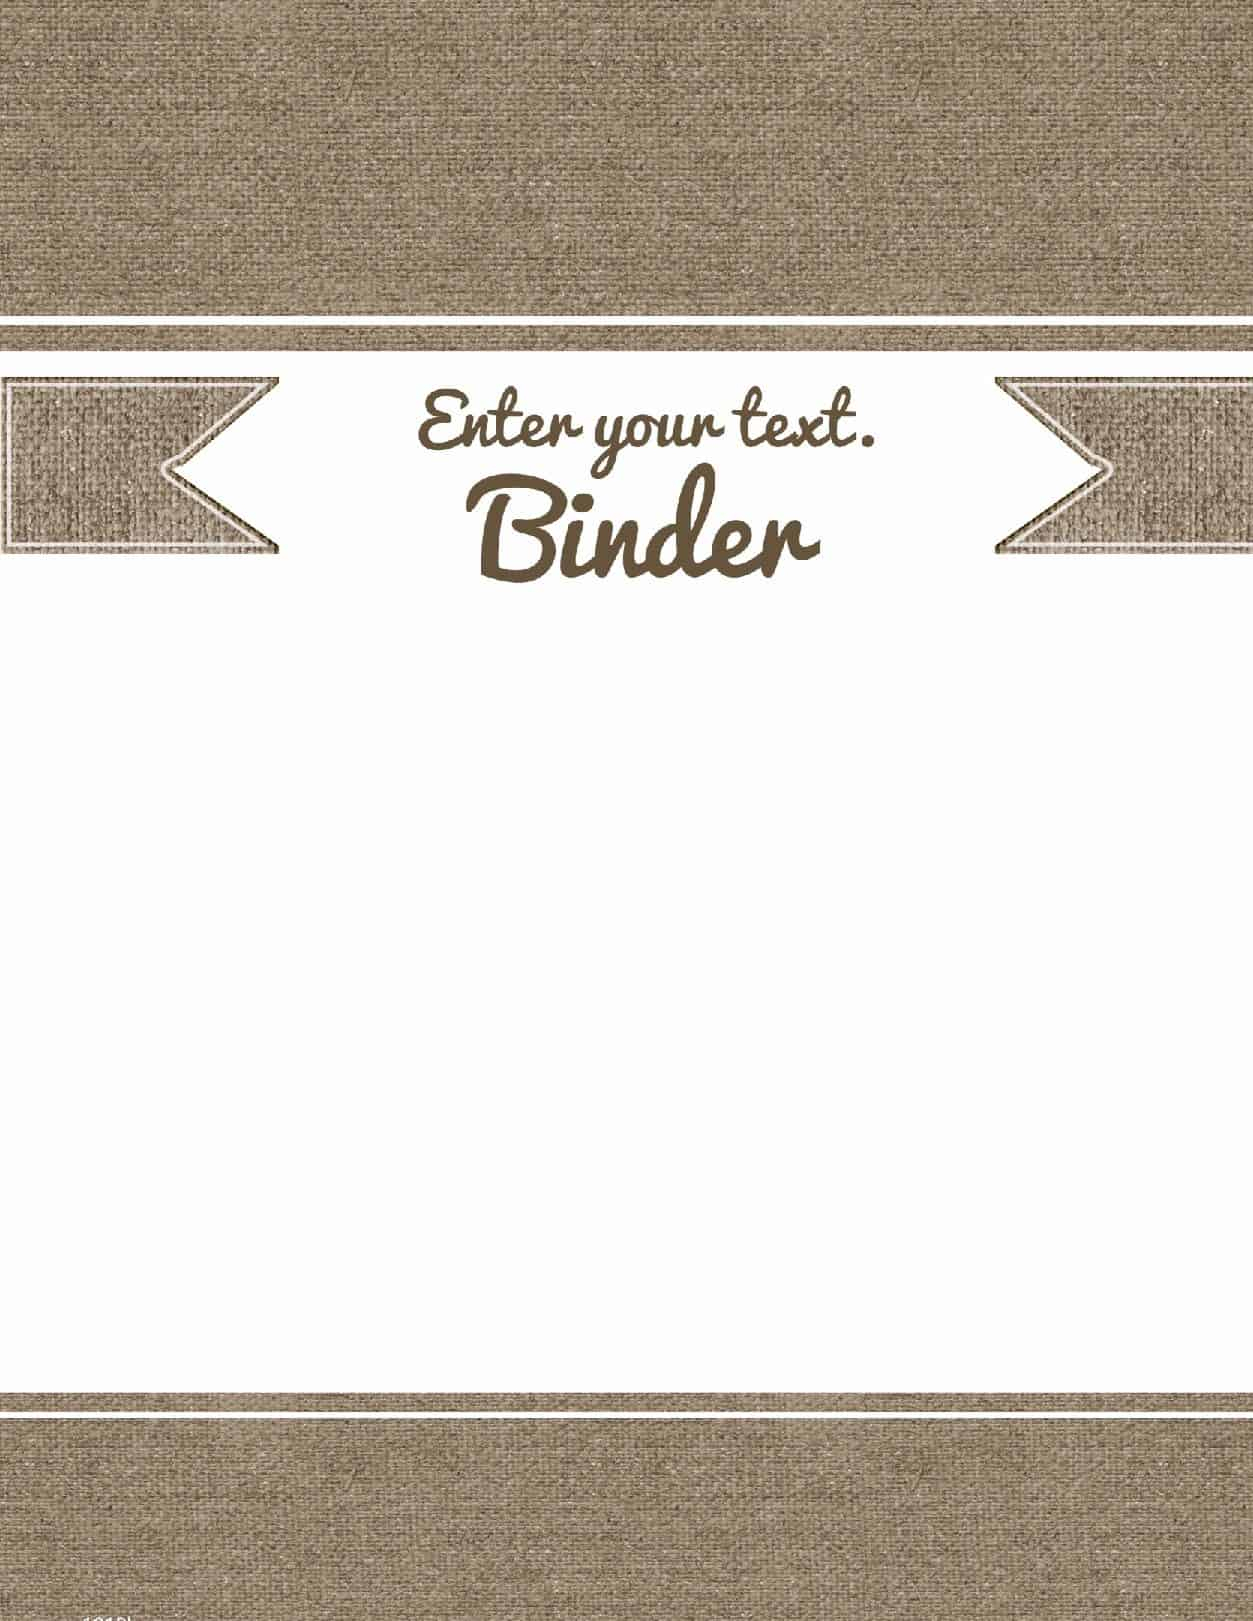 Free Binder Cover Templates | Customize Online & Print At Home | Free! - Free Printable Binder Cover Templates